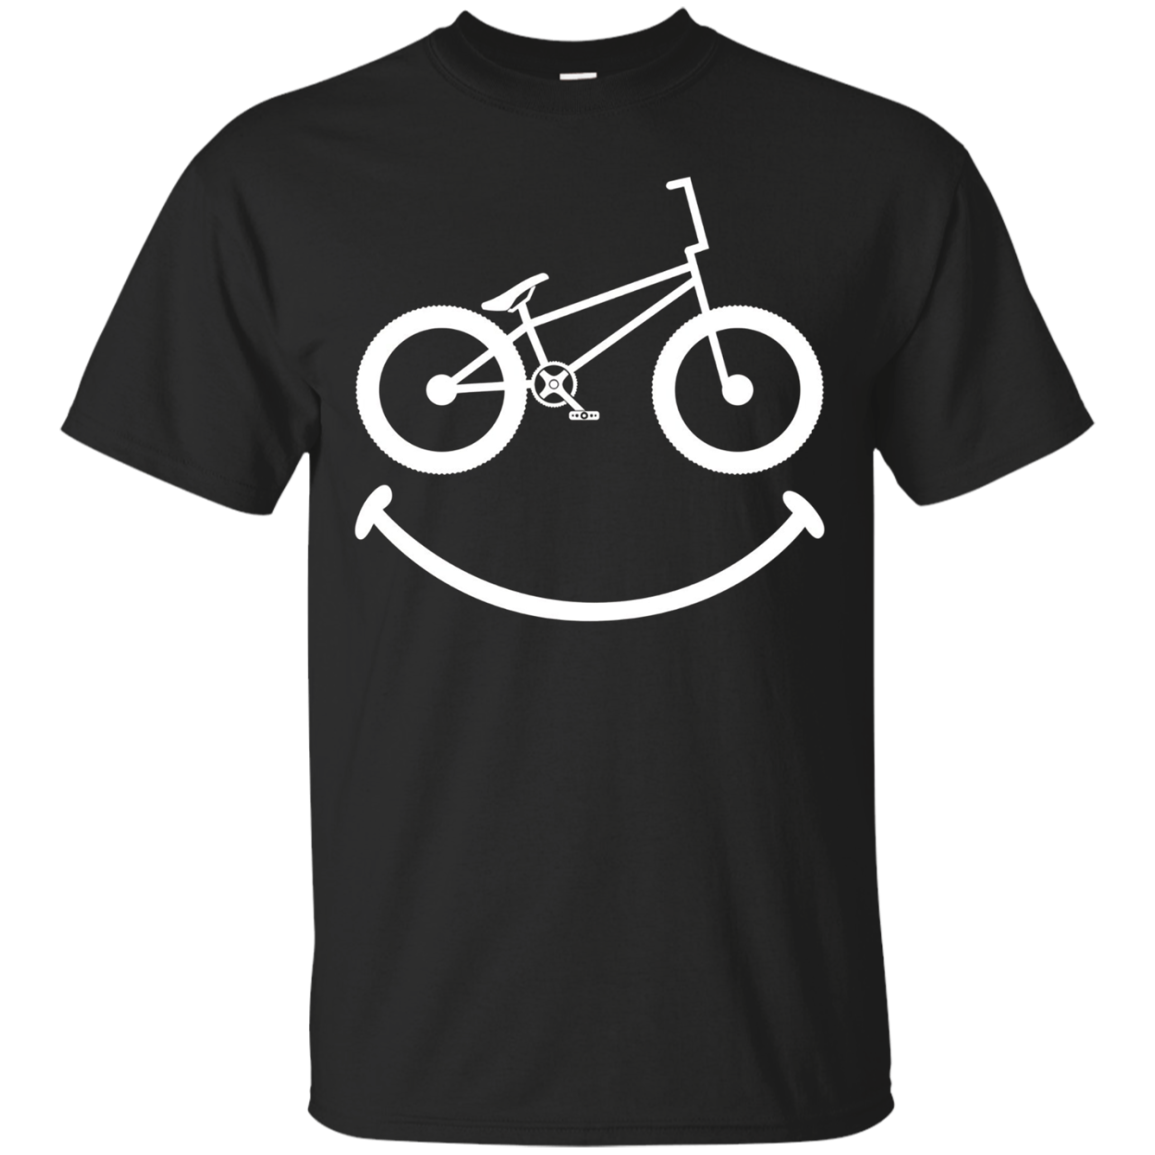 BMX Shirt: Smile Funny Love Bike Rider Gift T-Shirt